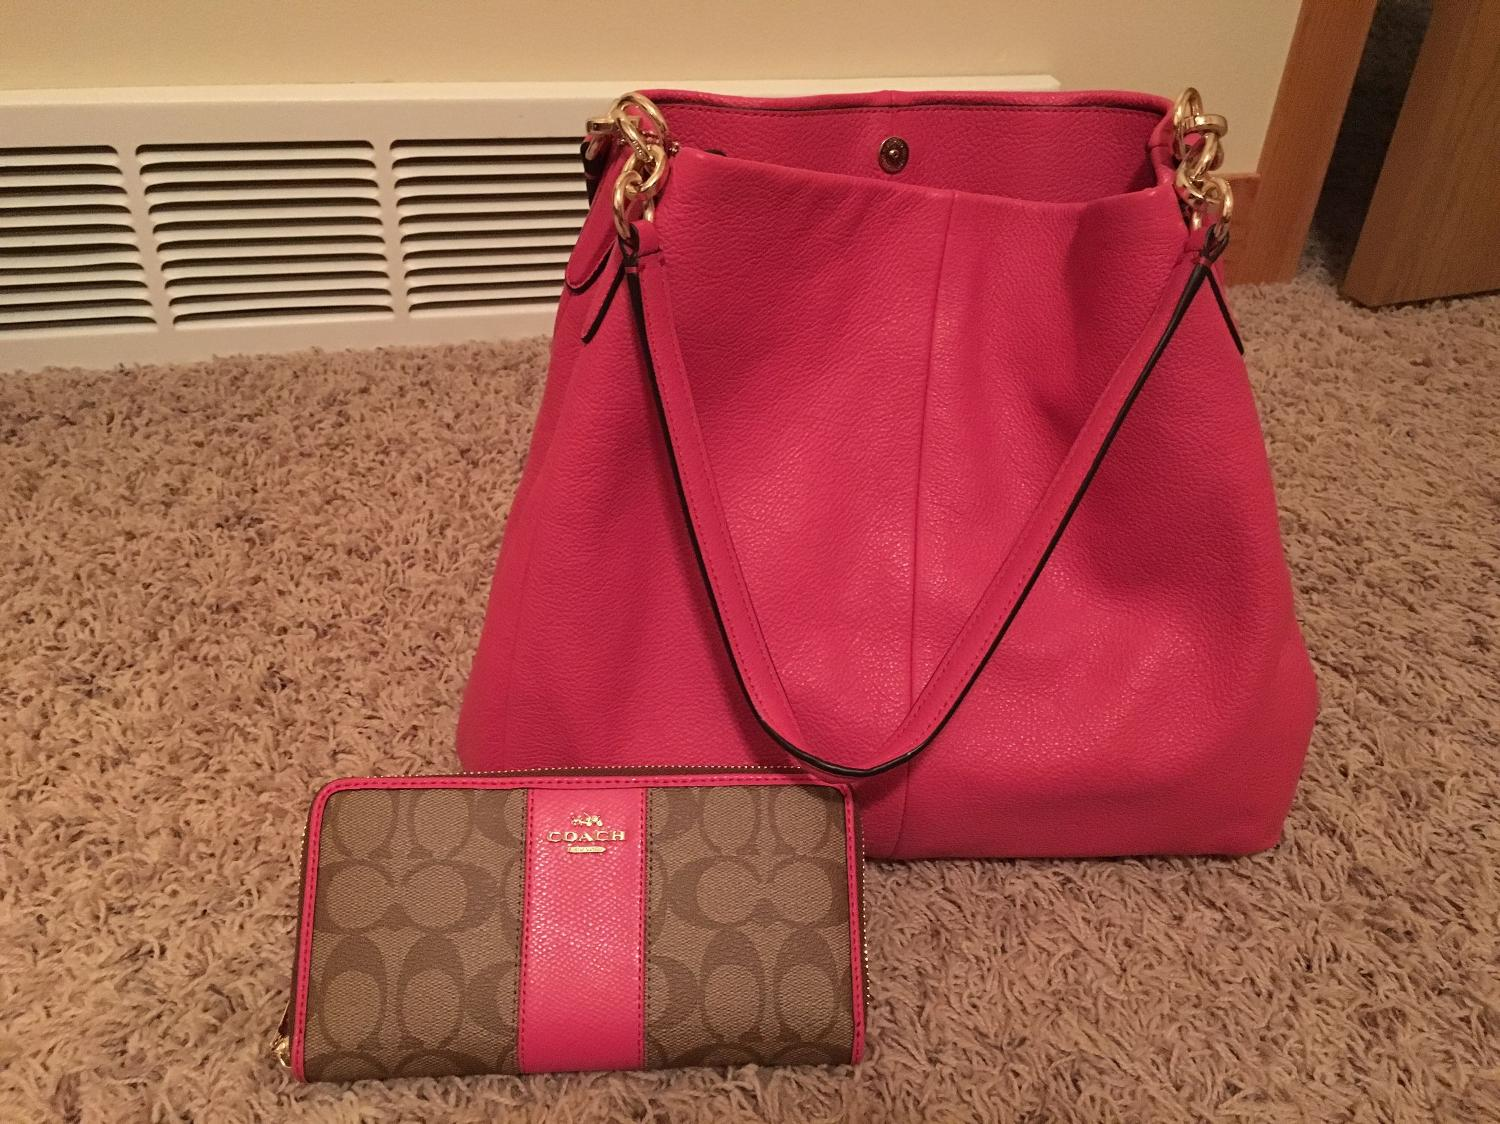 Best New Coach Purse And Wallet For Sale In Minot North